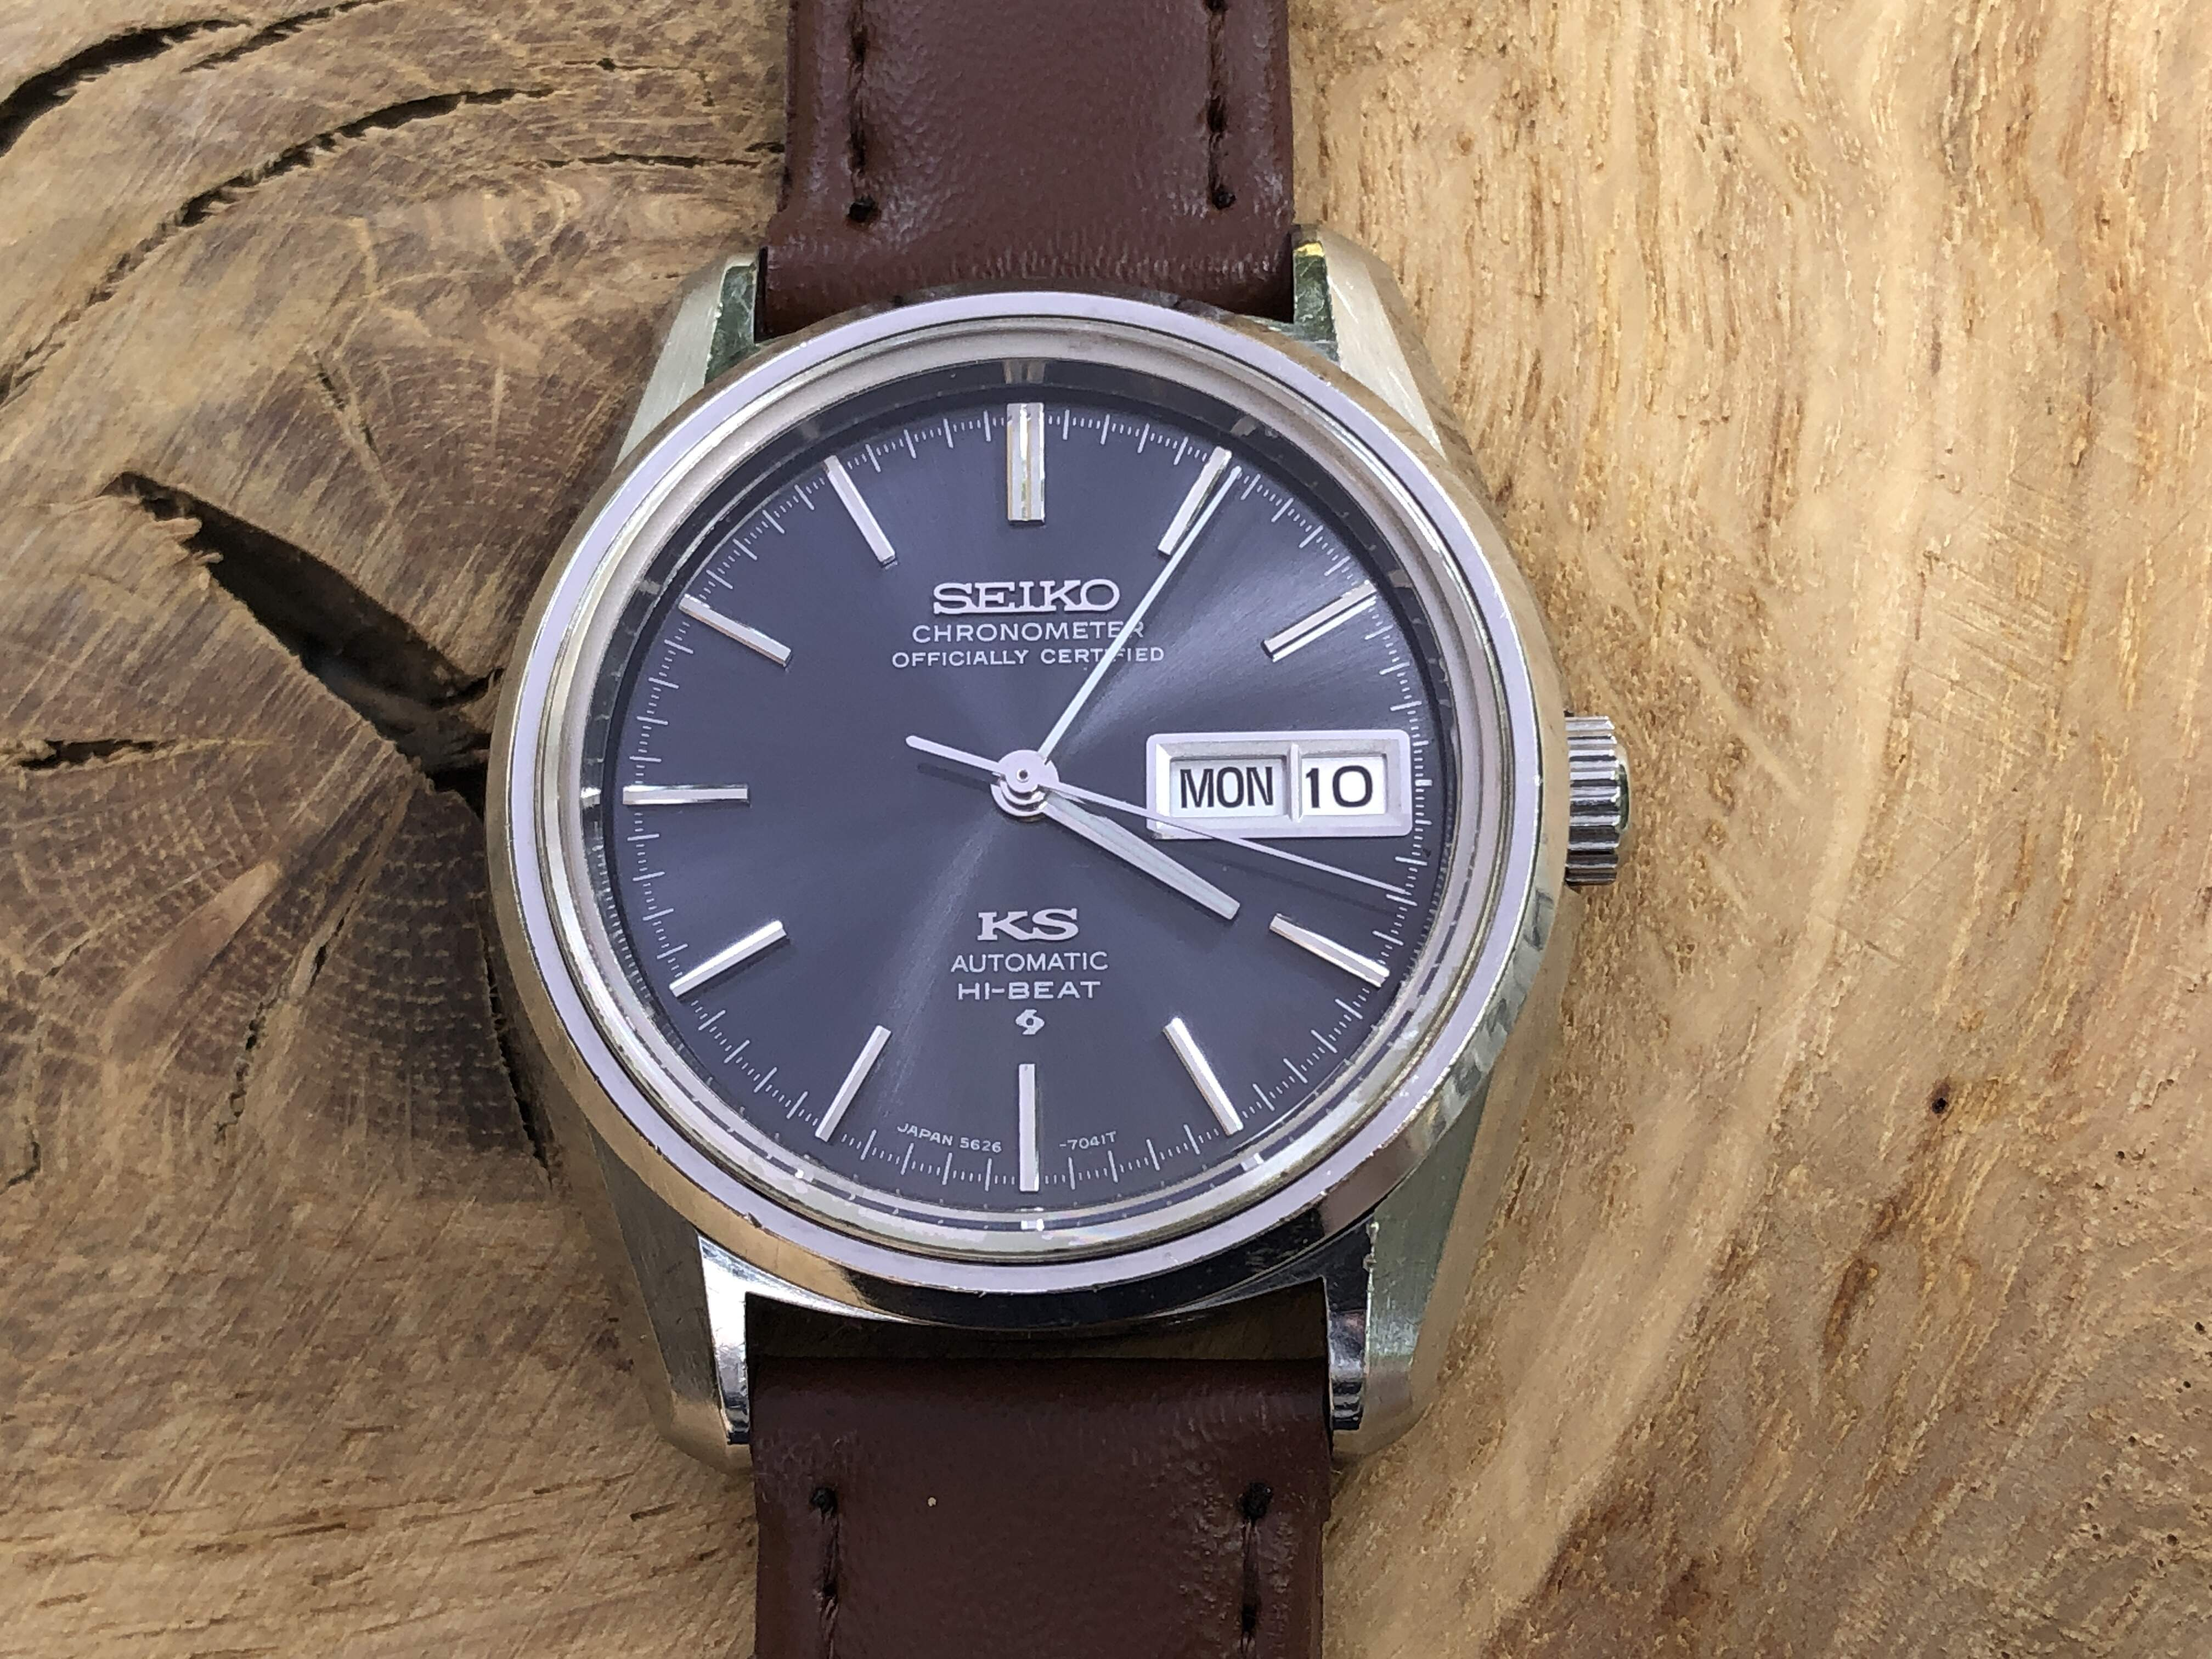 King Seiko Chronometer 5626-7040